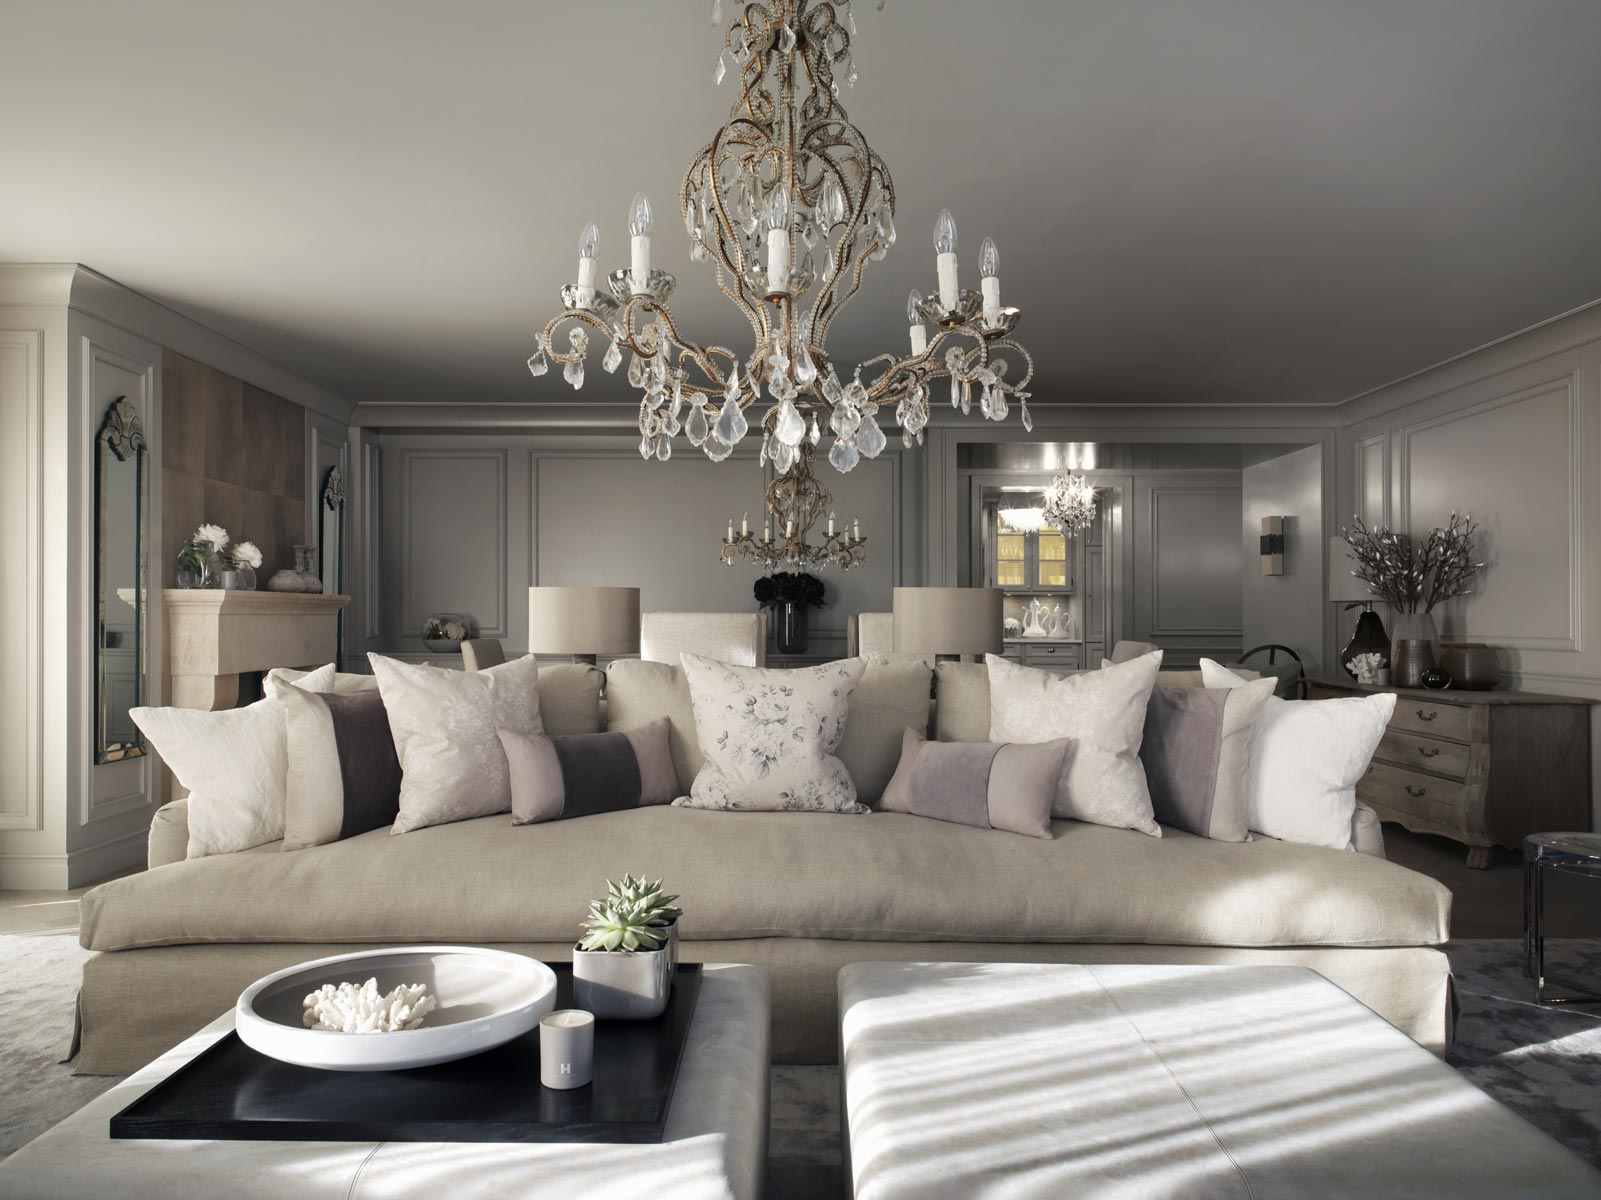 Top 10 kelly hoppen design ideas Luxury design ideas